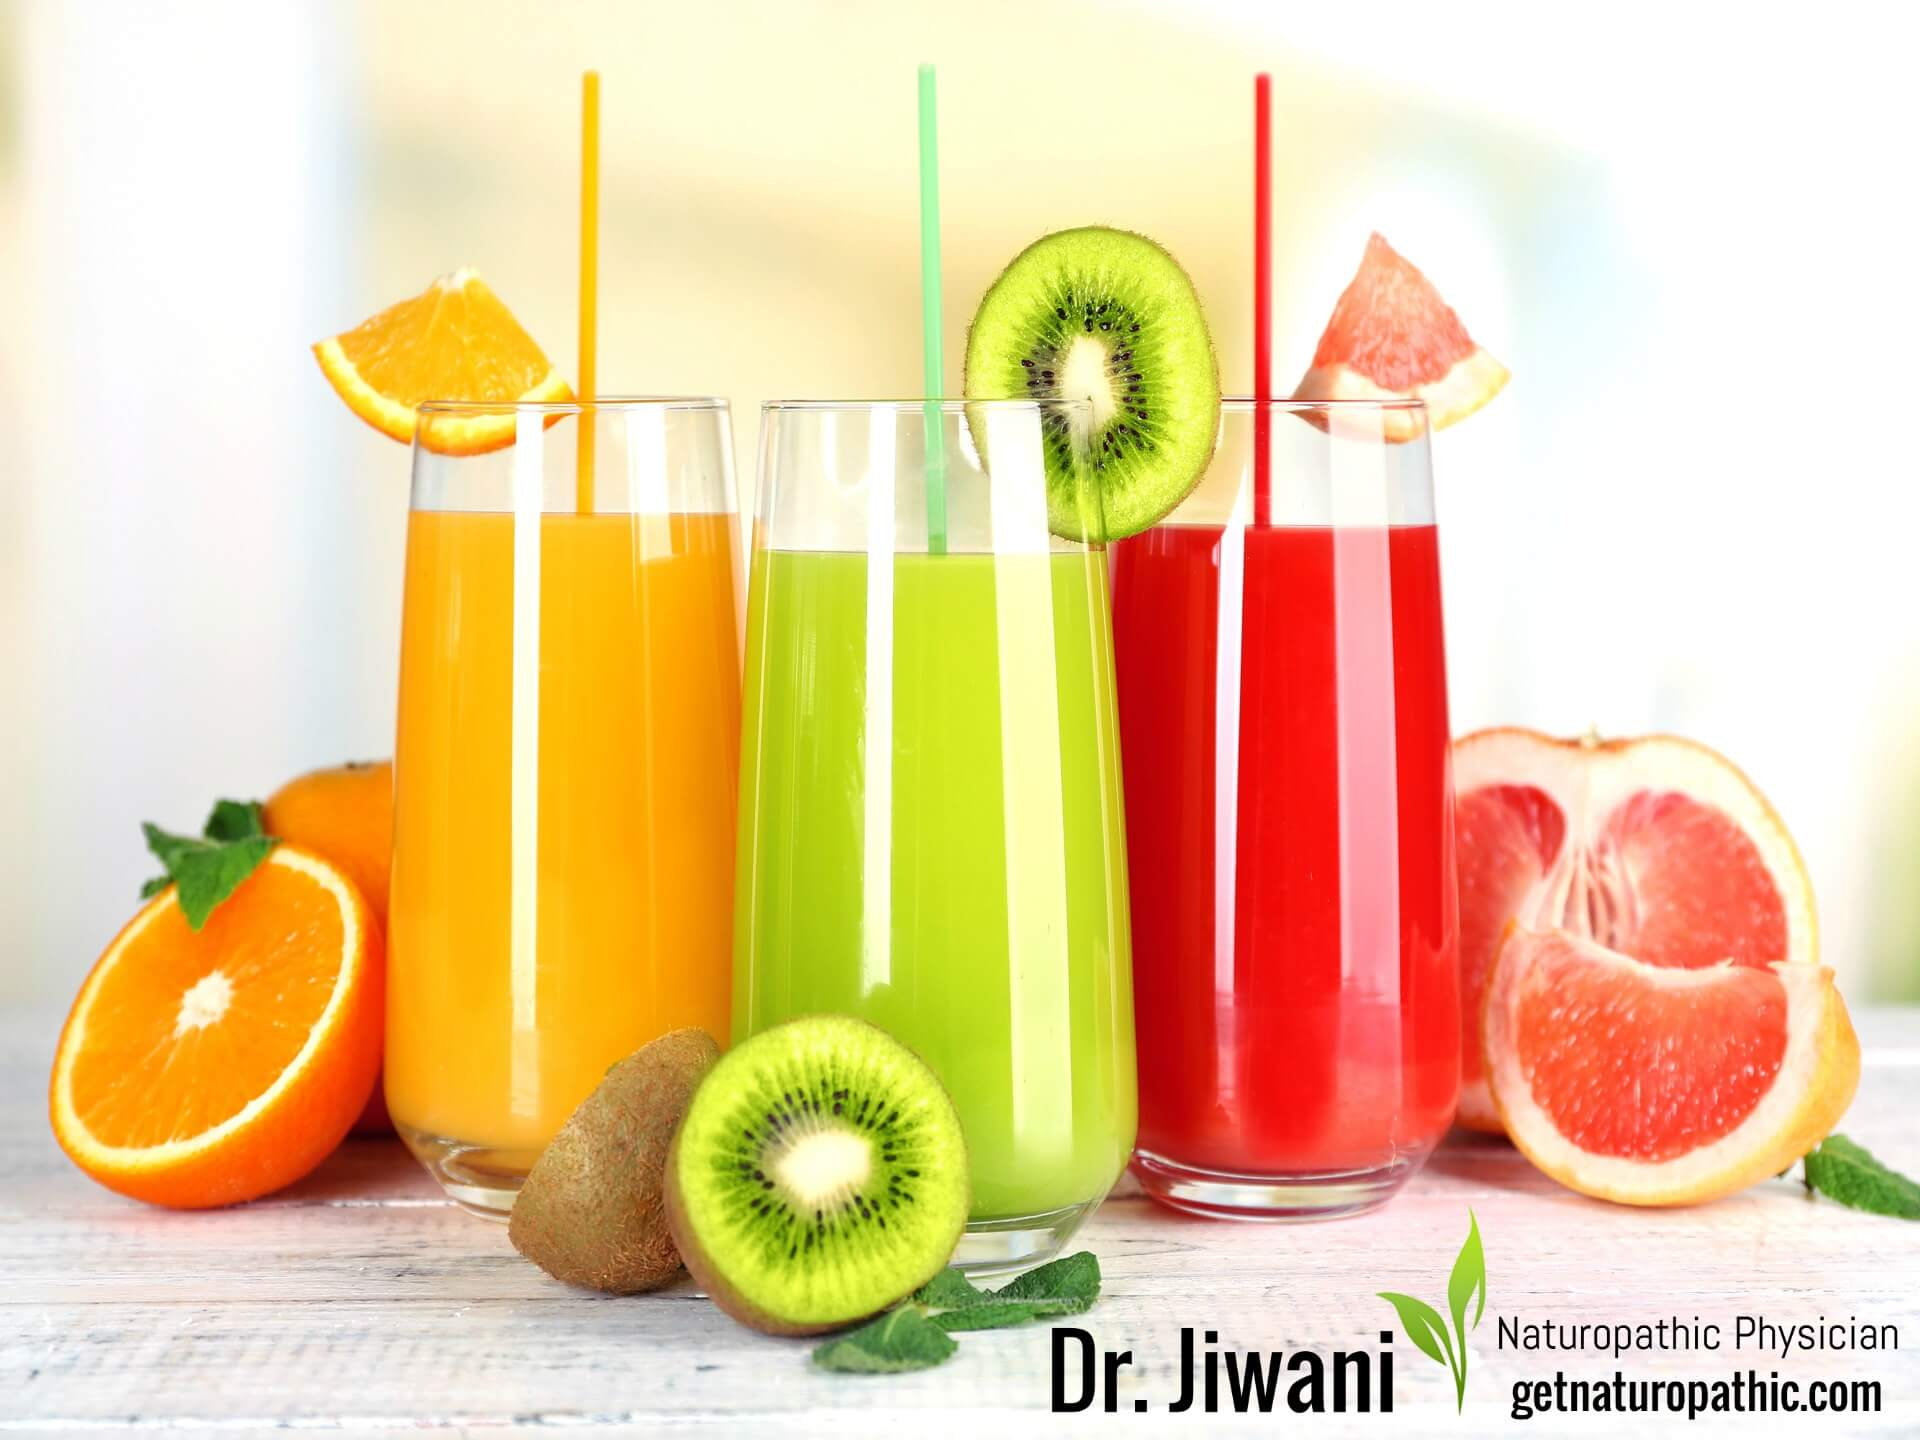 Fruit Juice: A Health Weight Threat| Dr. Jiwani's Naturopathic Nuggets Blog